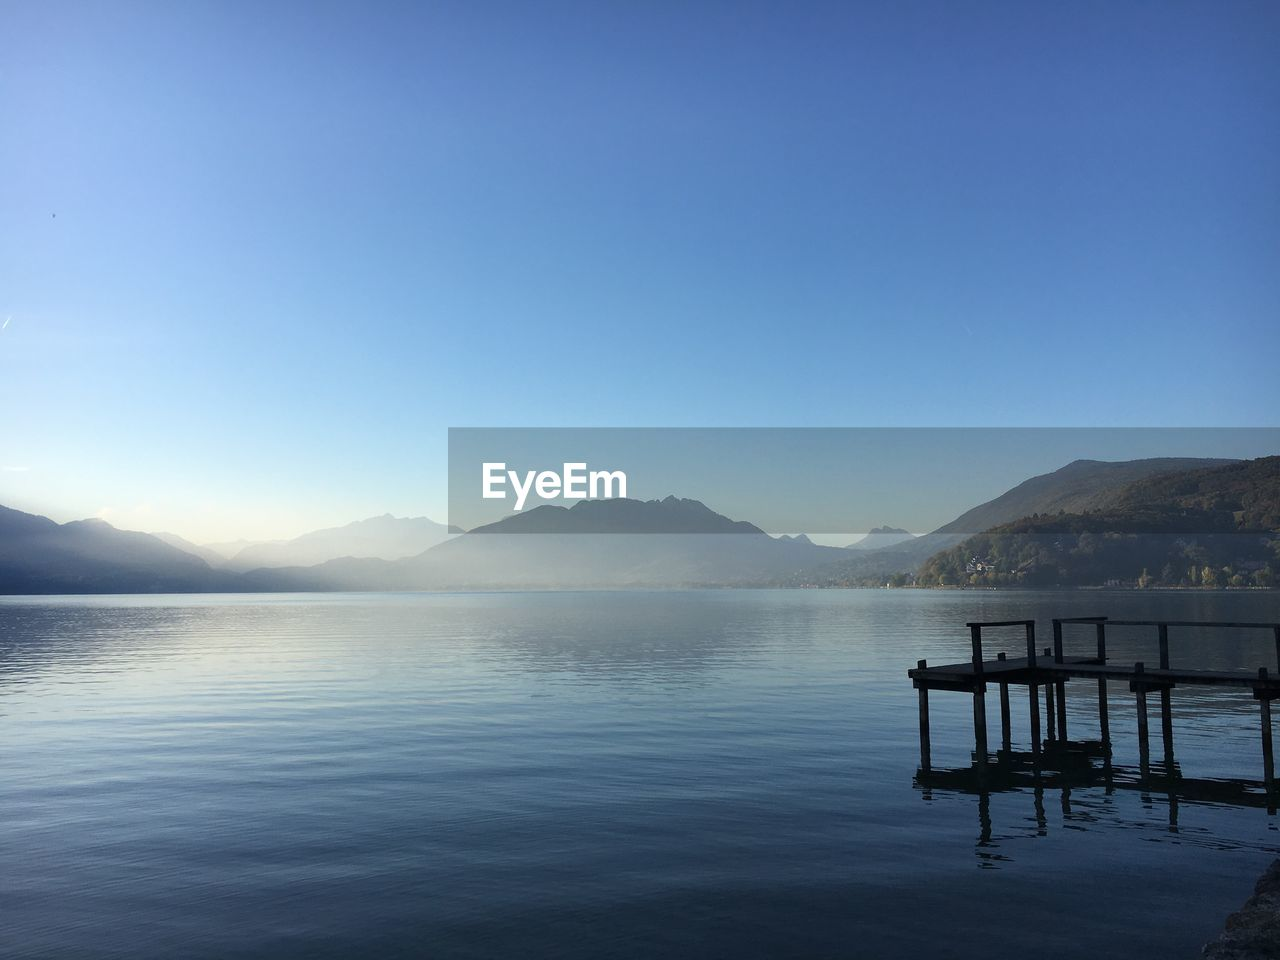 mountain, sky, water, beauty in nature, scenics - nature, tranquility, tranquil scene, lake, clear sky, copy space, mountain range, blue, nature, non-urban scene, waterfront, no people, idyllic, day, reflection, outdoors